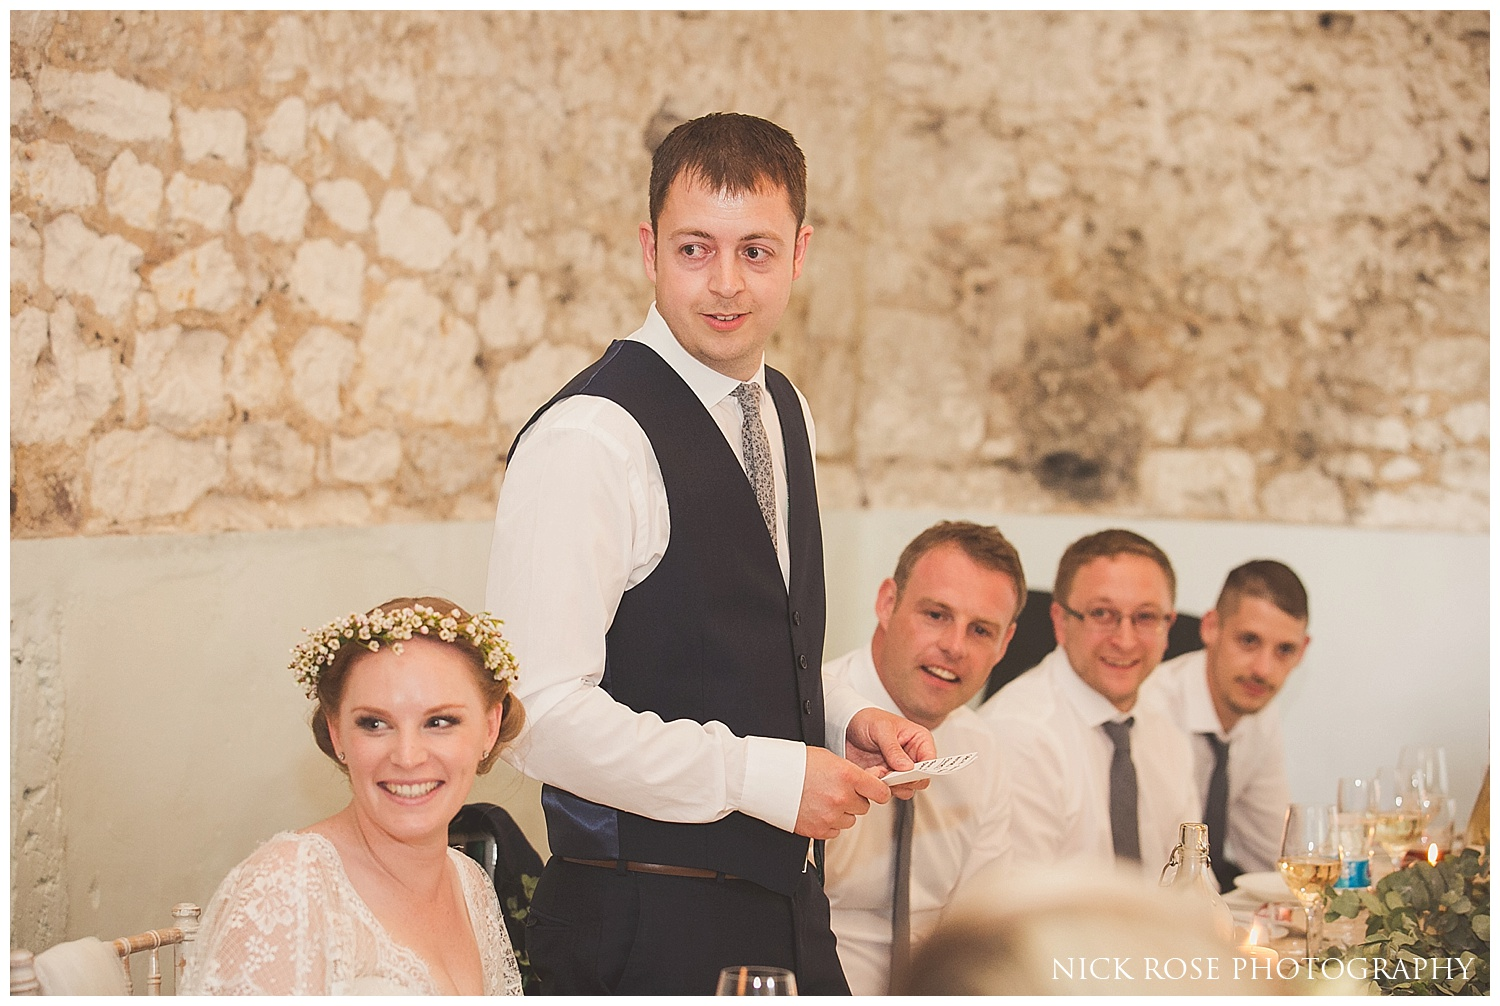 Wedding Photography at Monks Barn